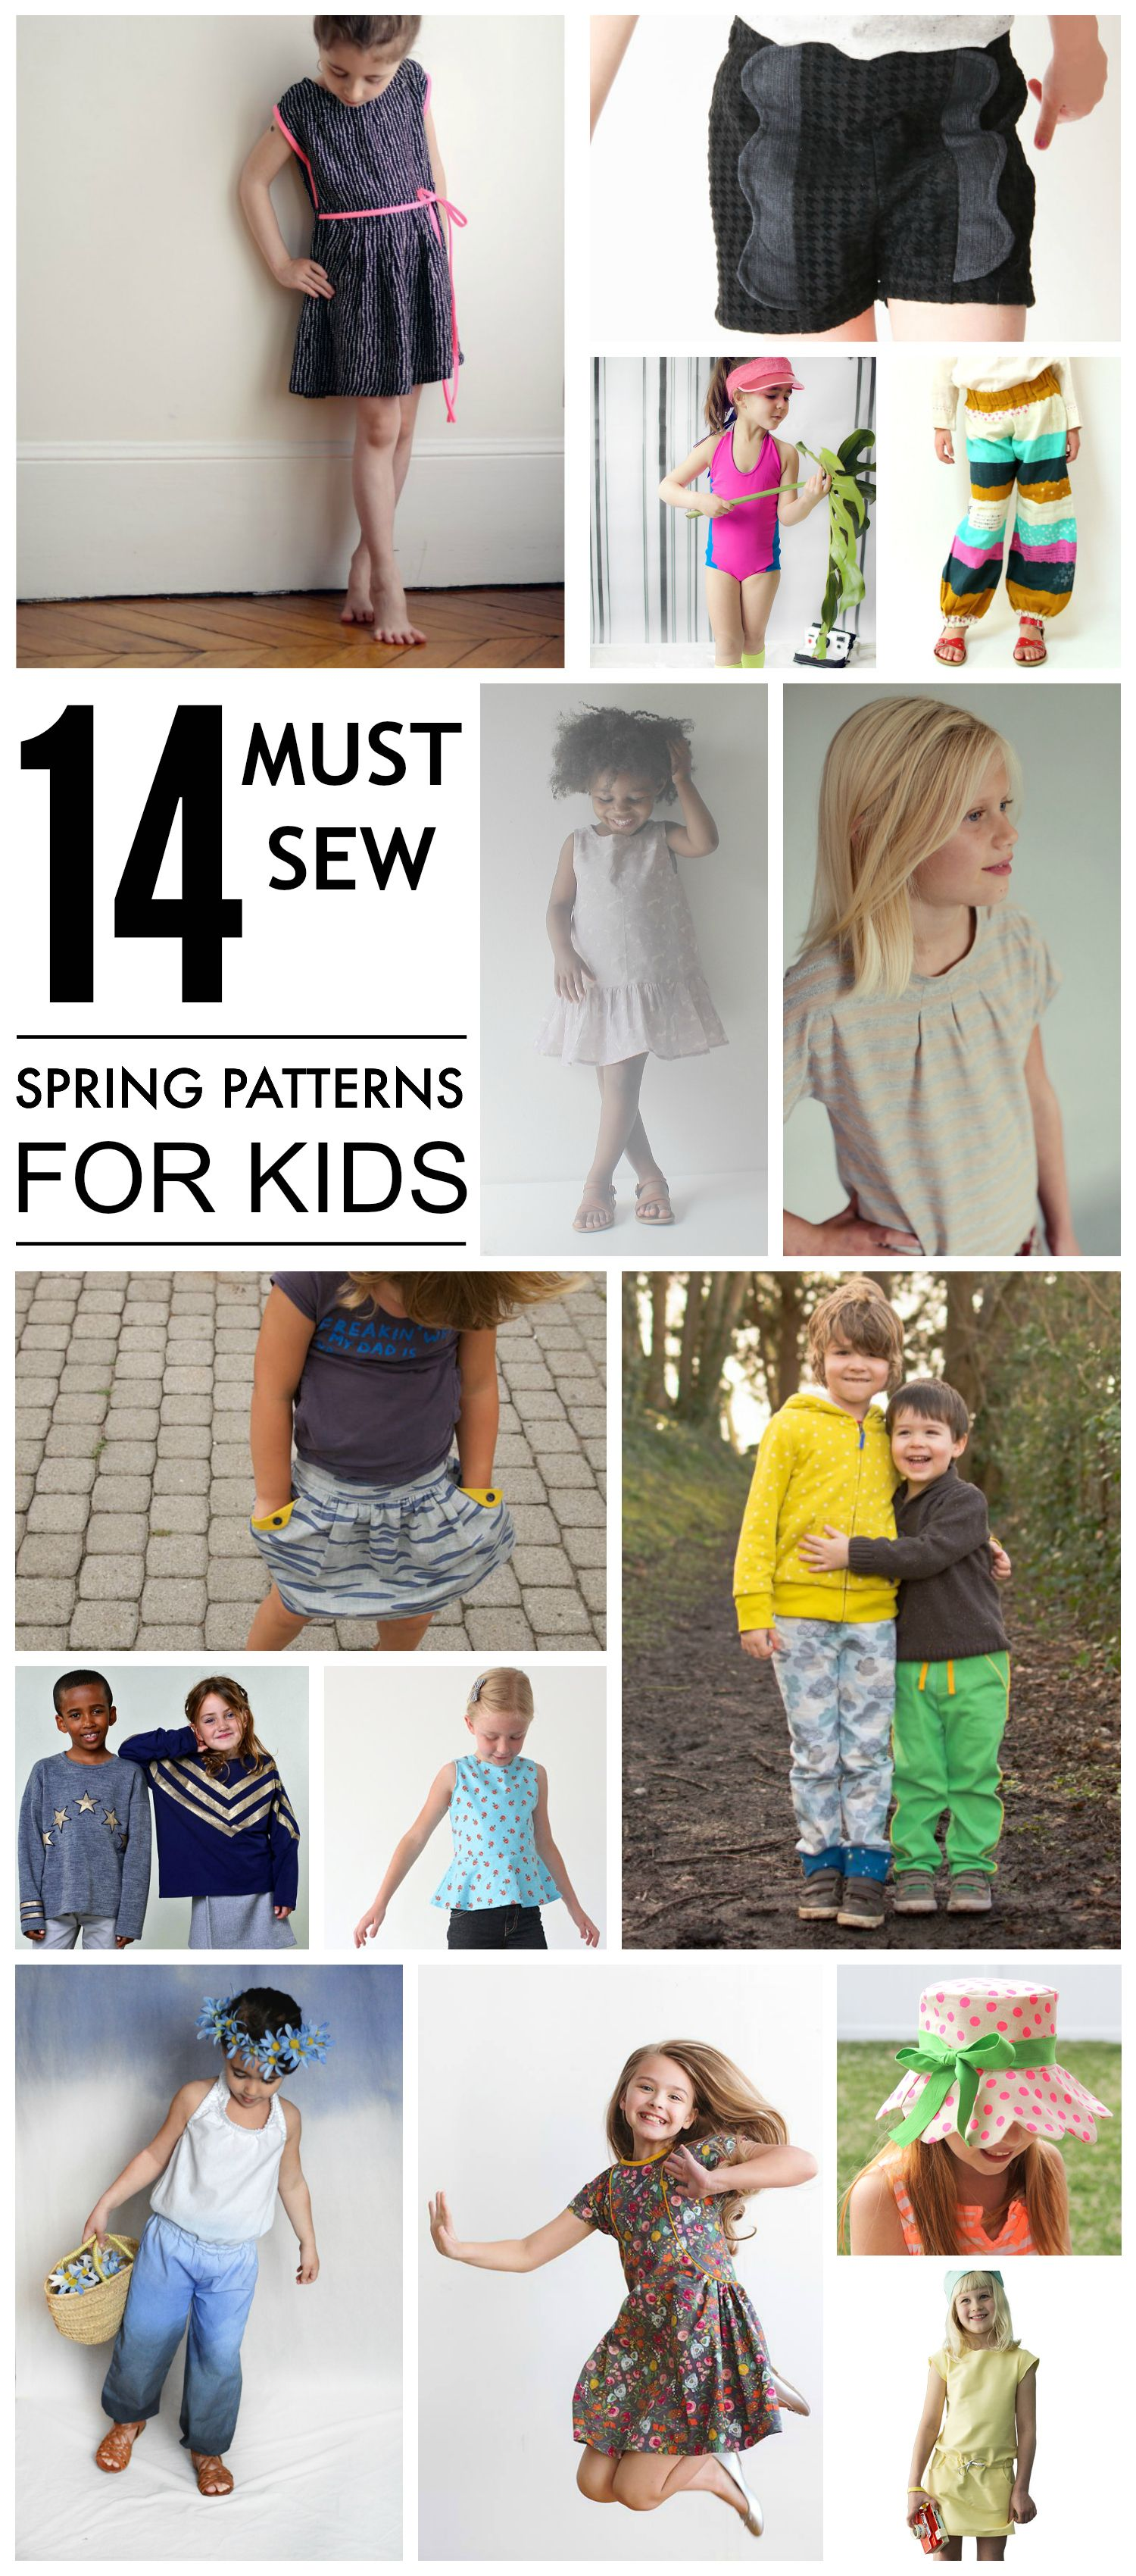 14 must sew spring patterns for kids patterns spring and sewing 14 must sew spring patterns for kids jeuxipadfo Images